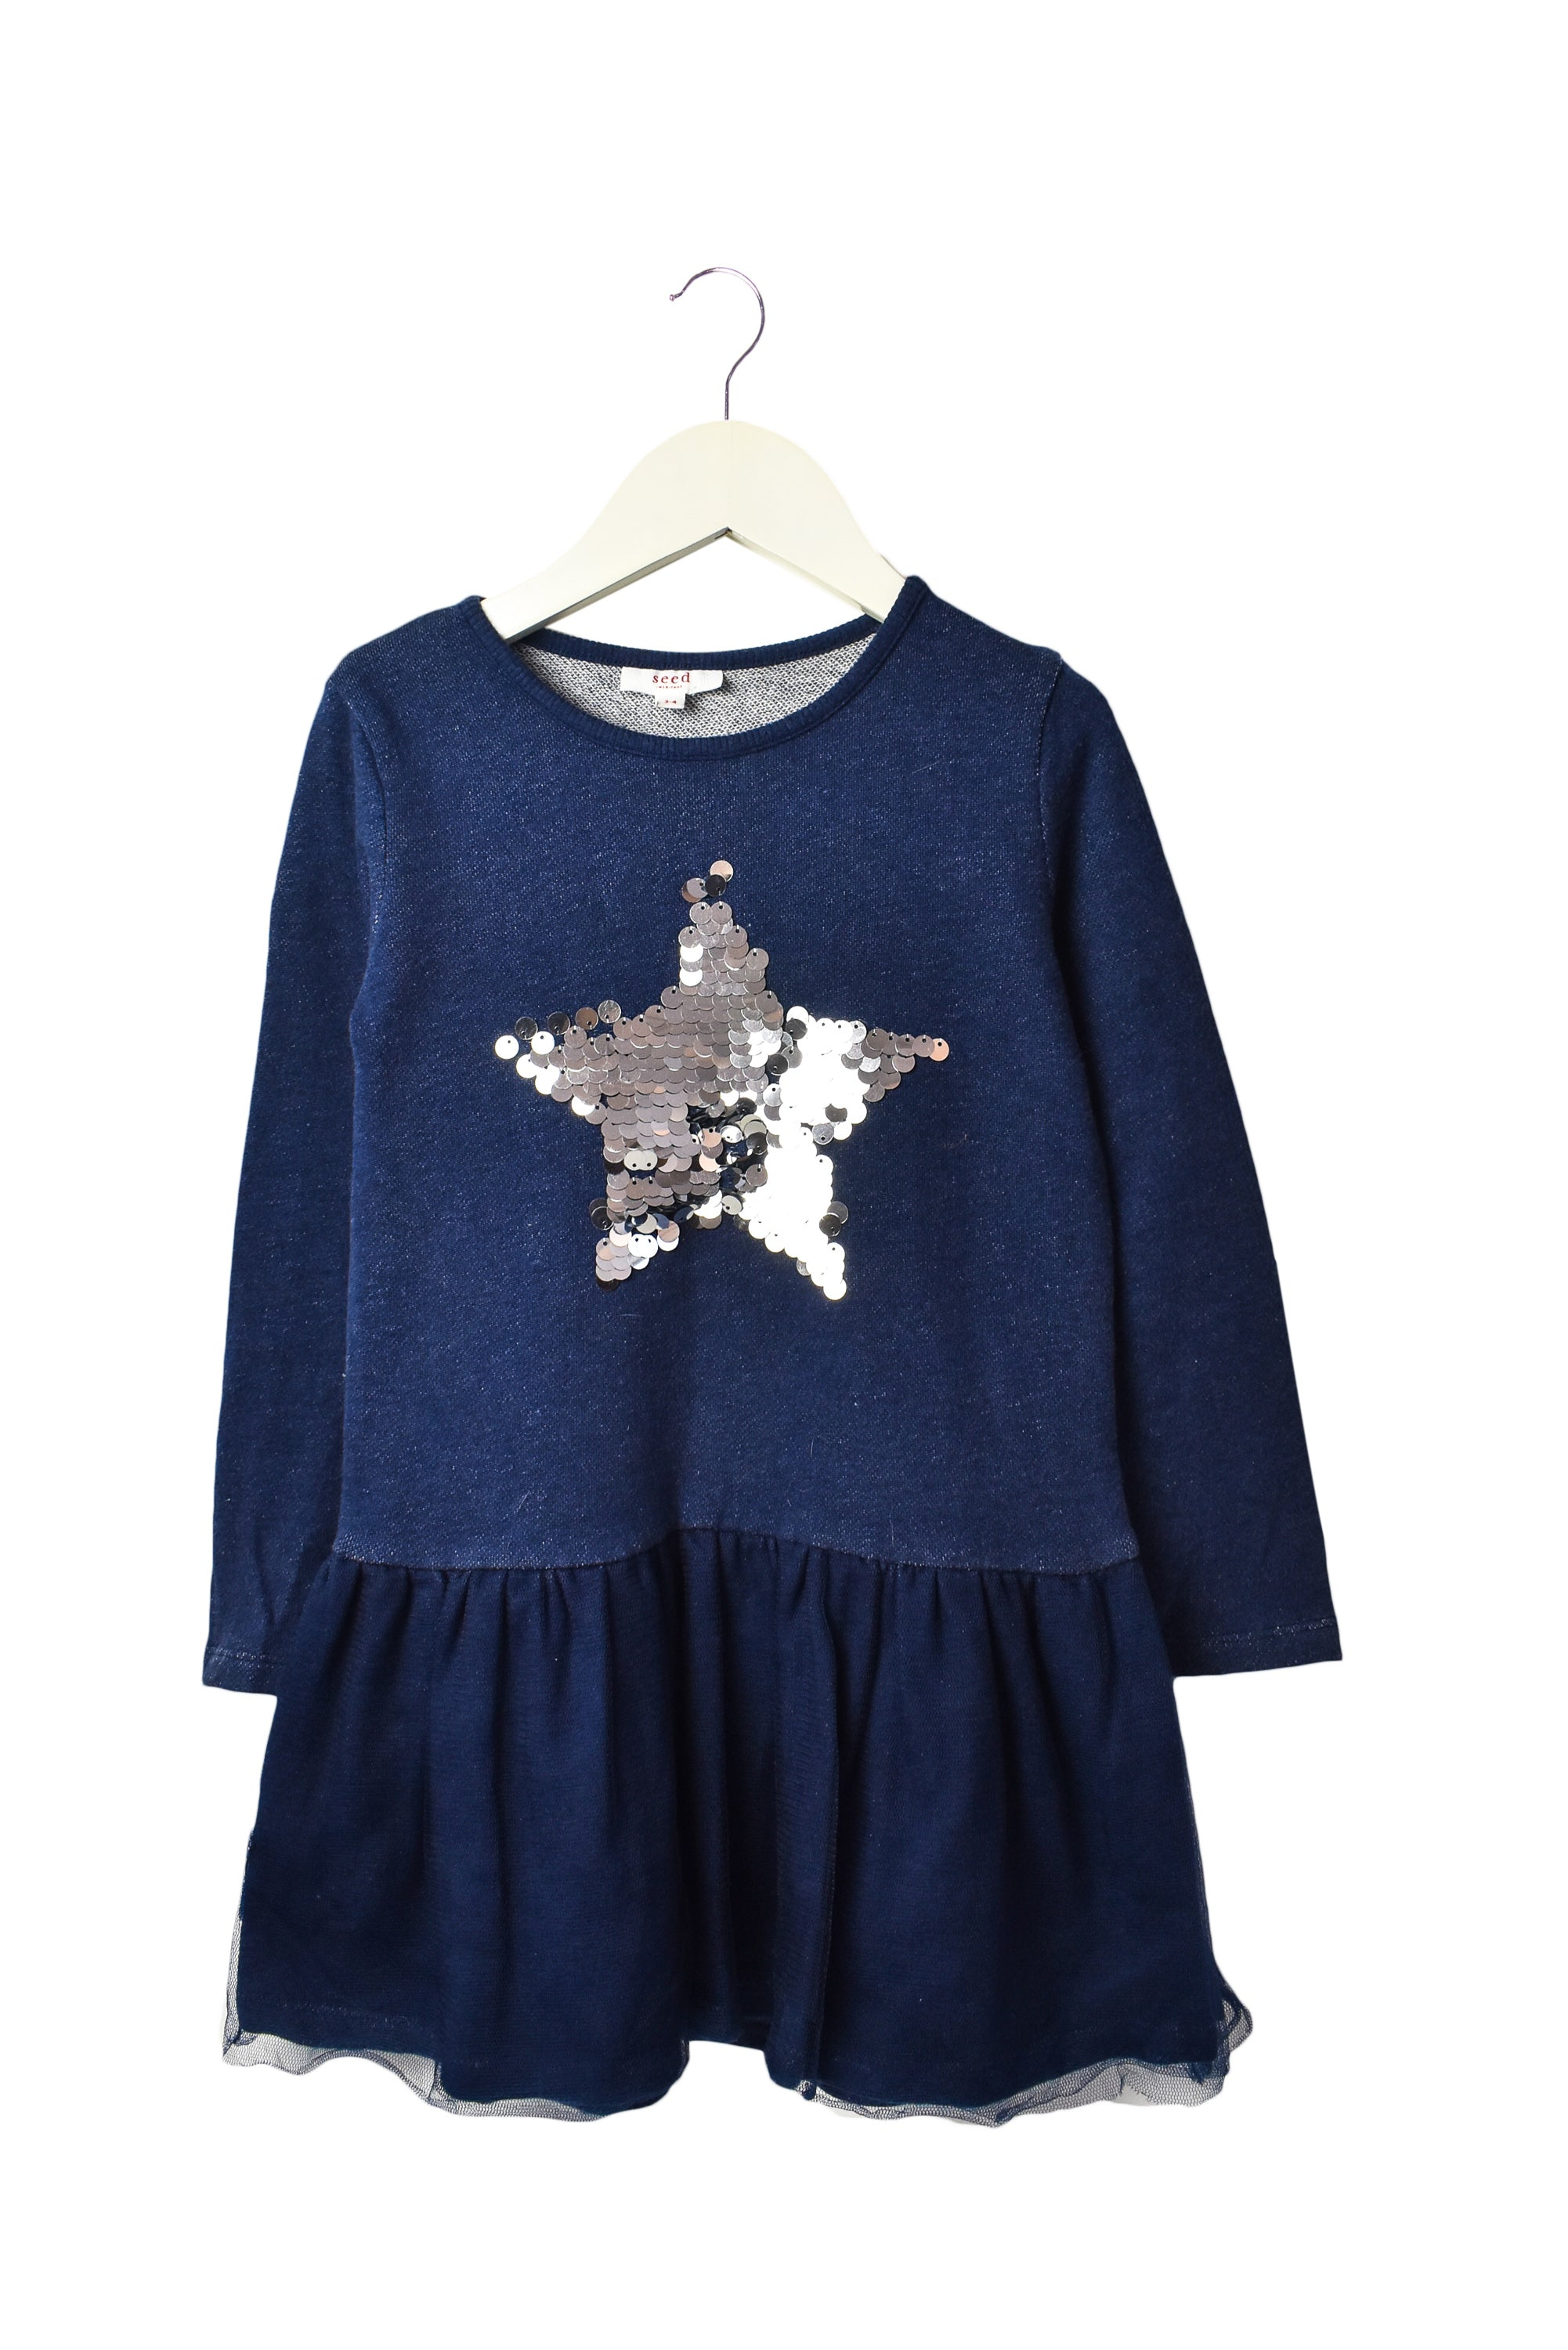 10006557 Seed Kids~Dress 3-4T at Retykle